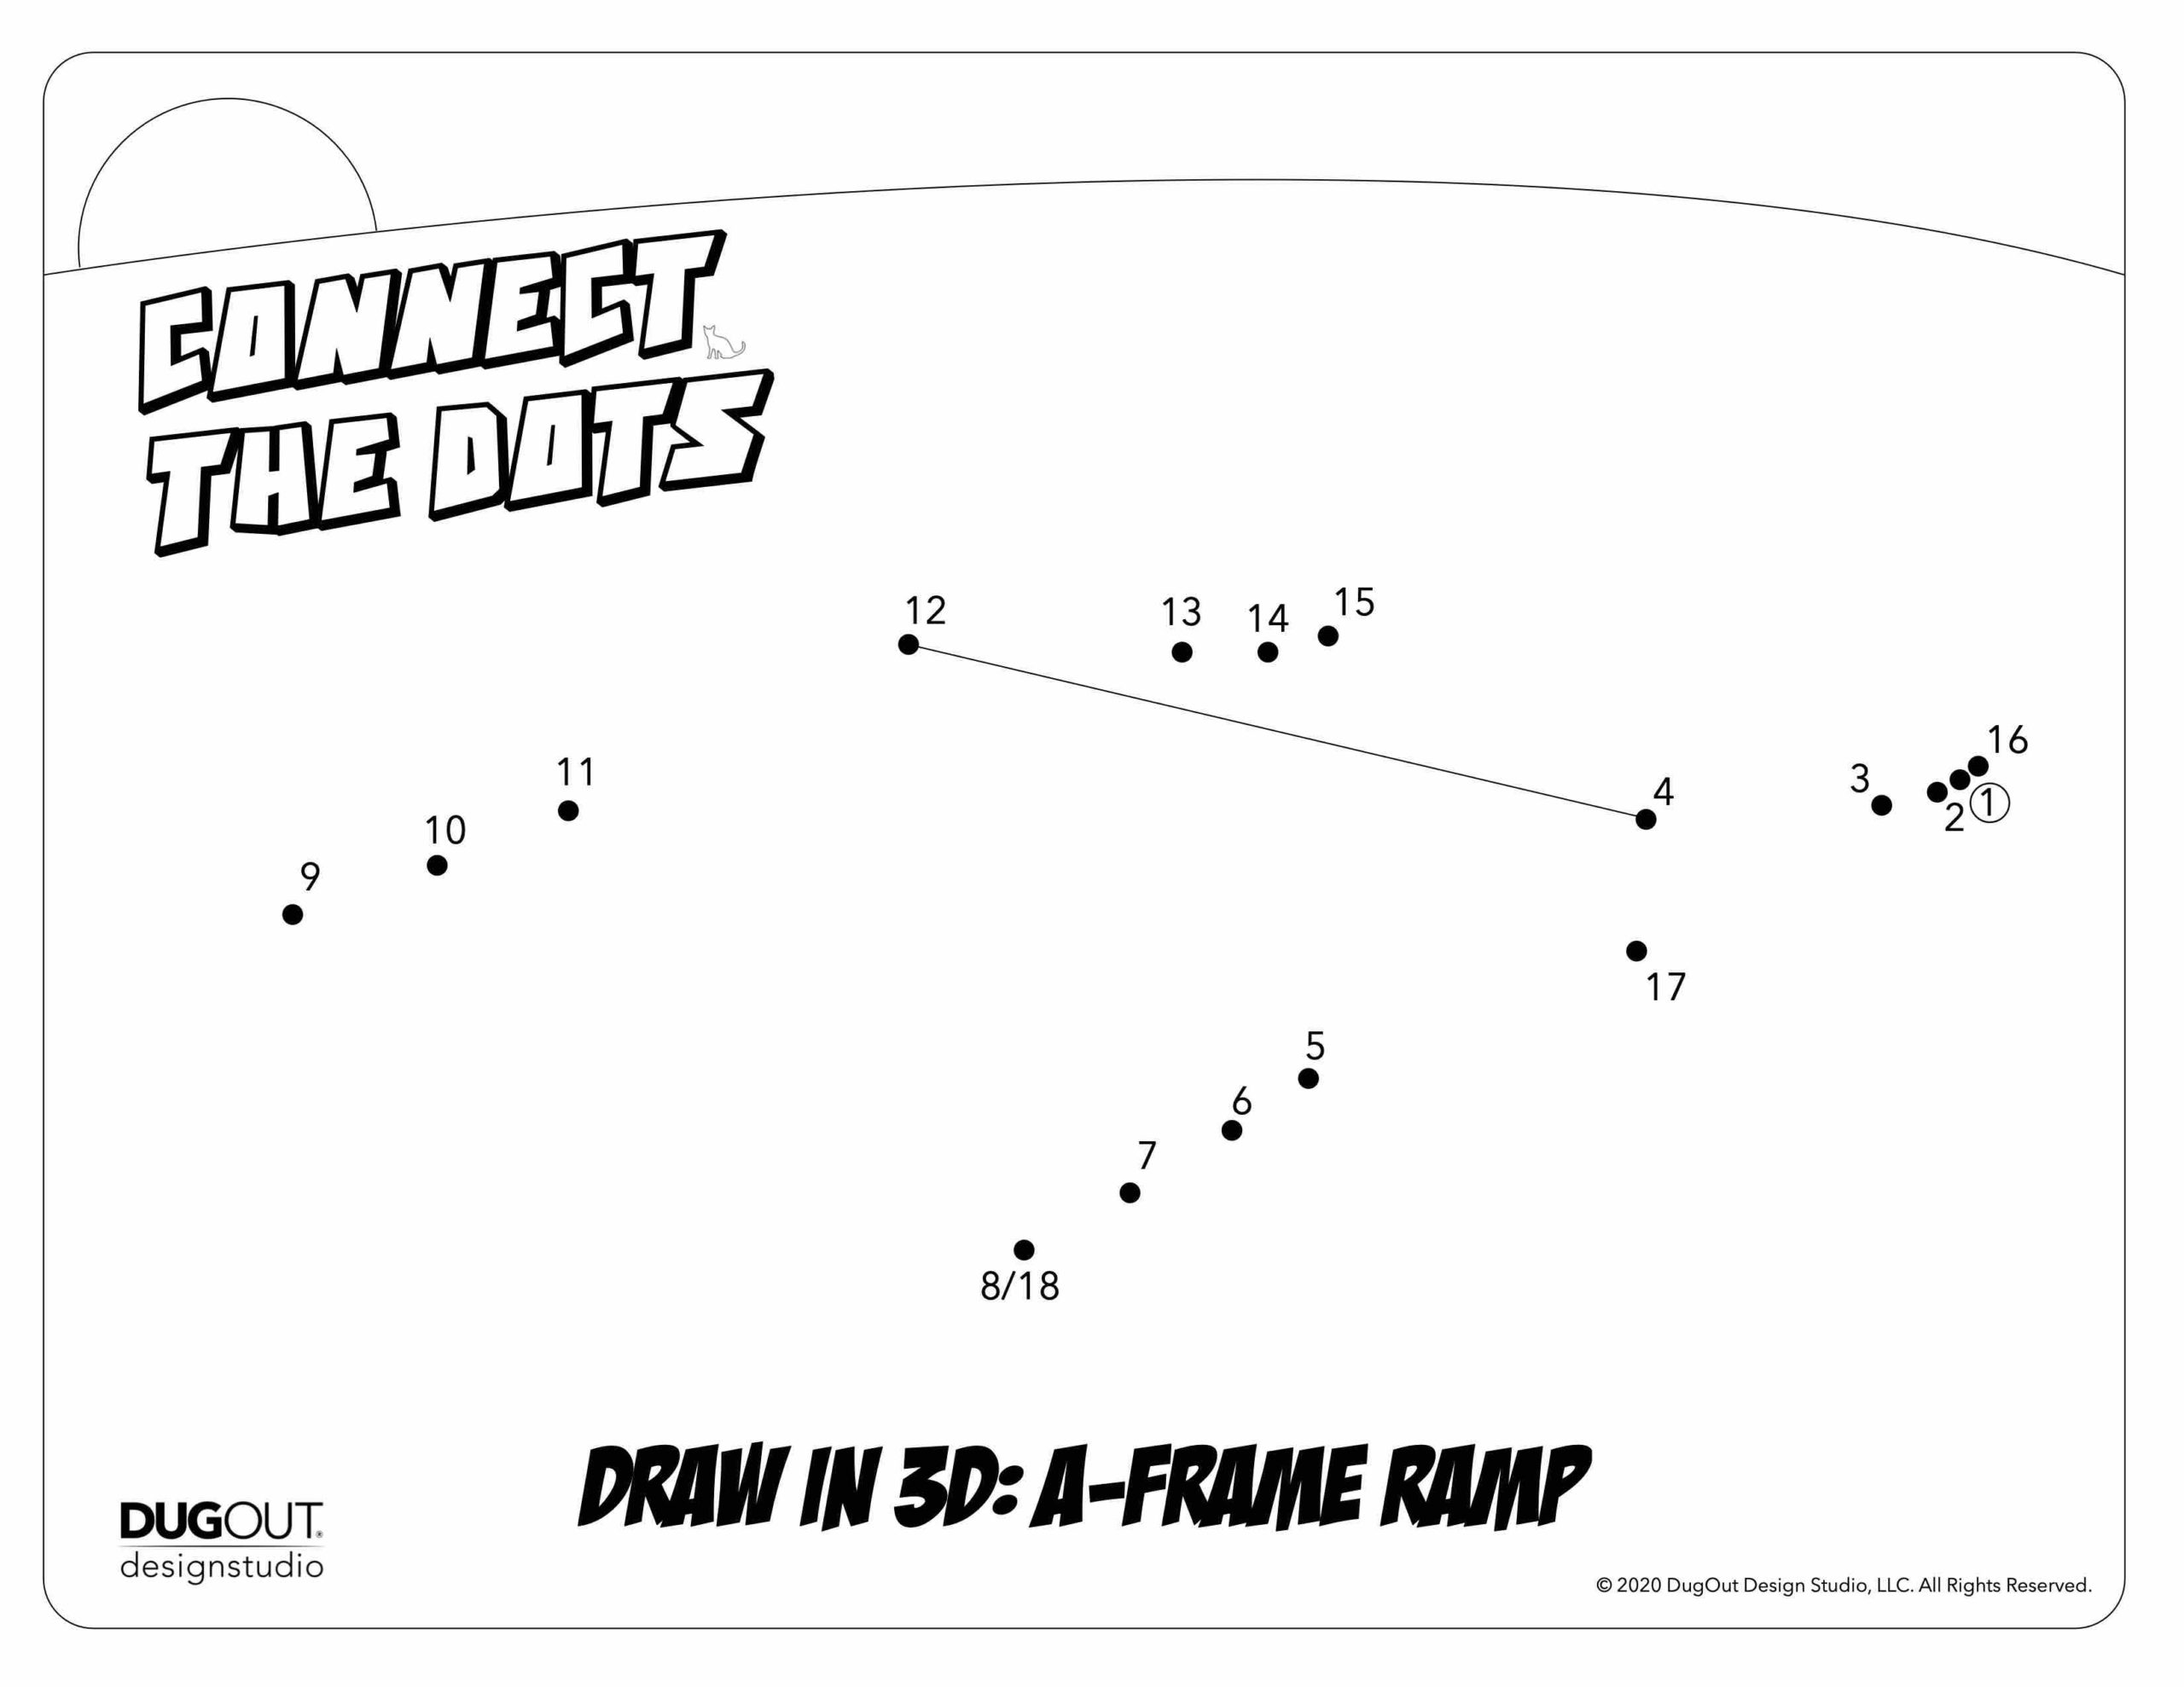 Connect the Dots: Learn to draw a 3D A-Frame Ramp